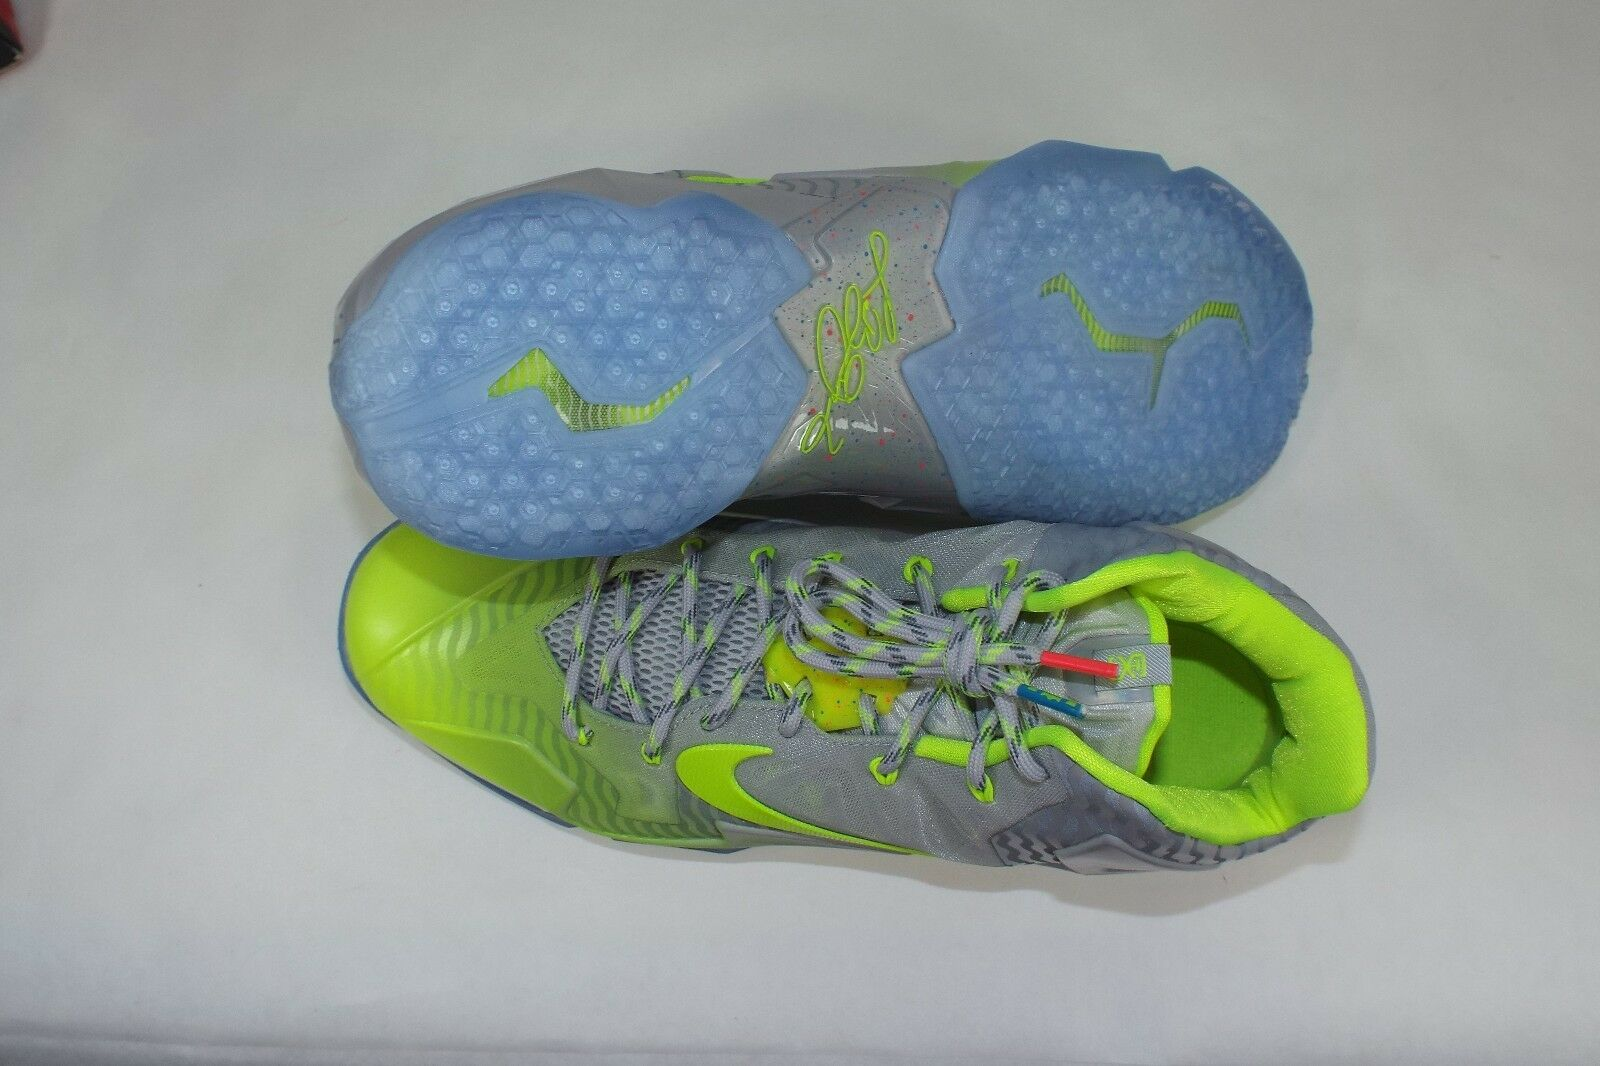 Mens SZ 11.5 NIKE Lebron XI Collection Luster Luster Luster Volt Ice schuhe  220 683252-074 92e194